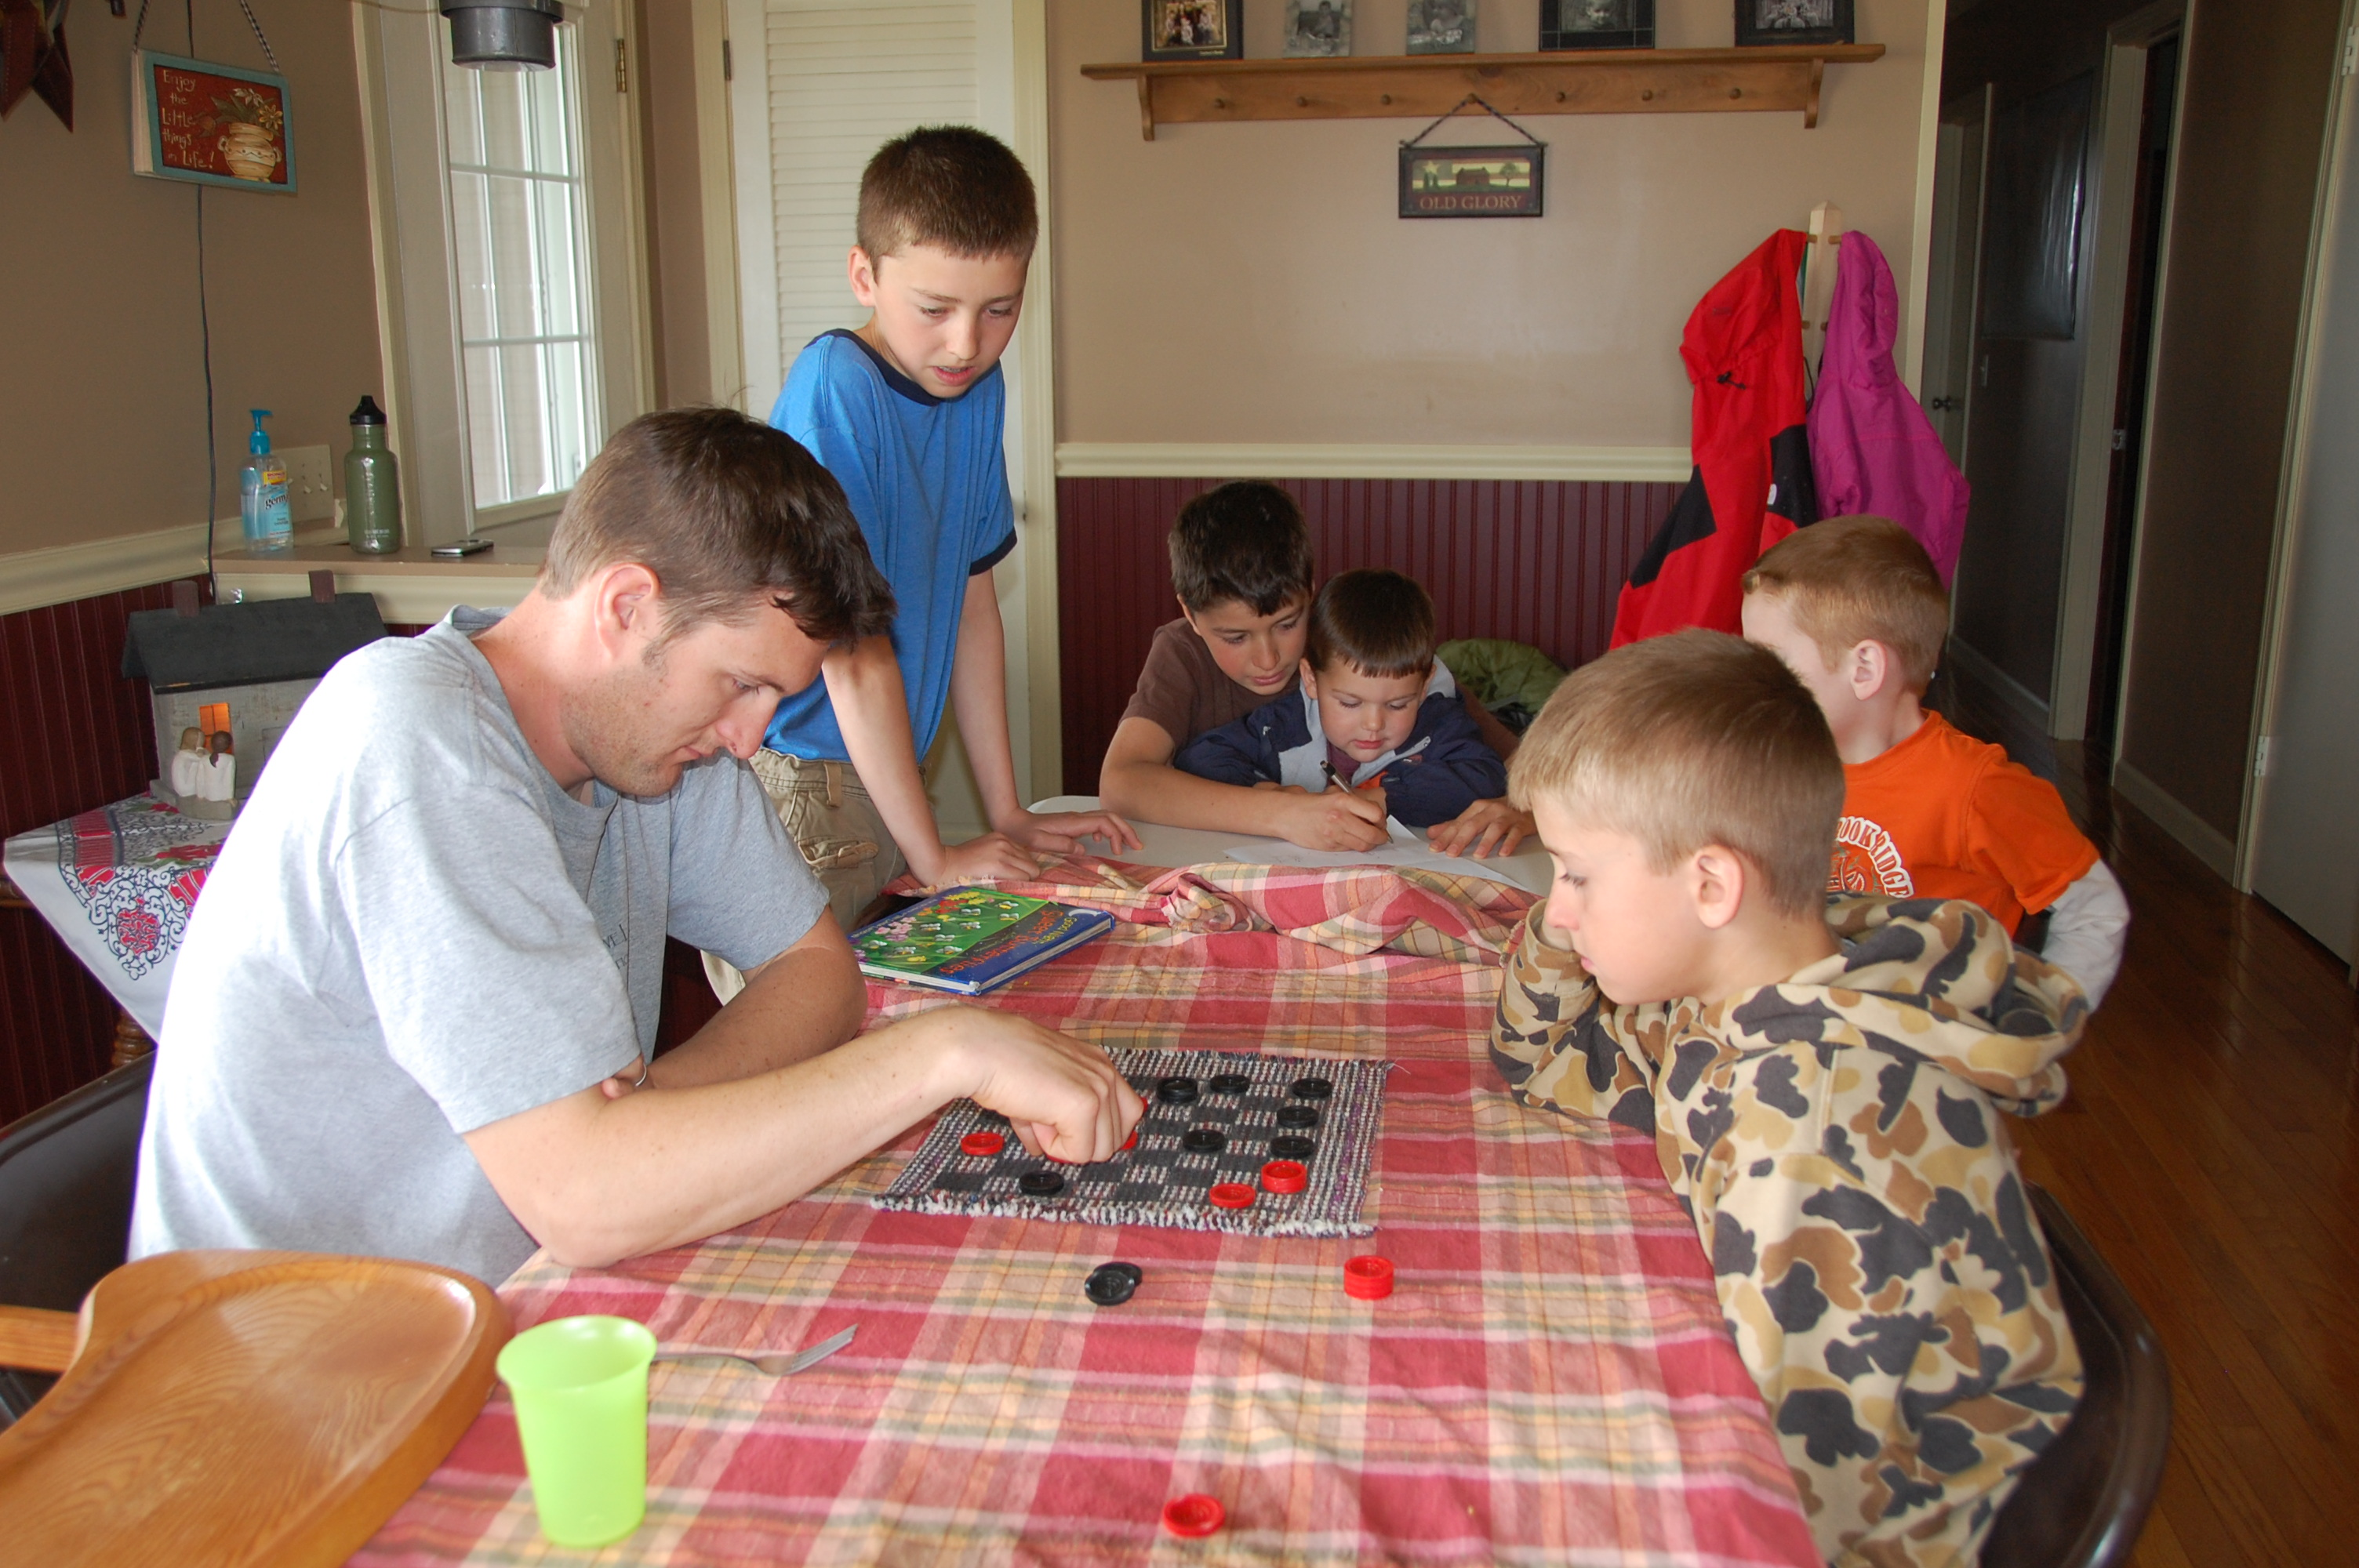 The boys and Nate playing games.